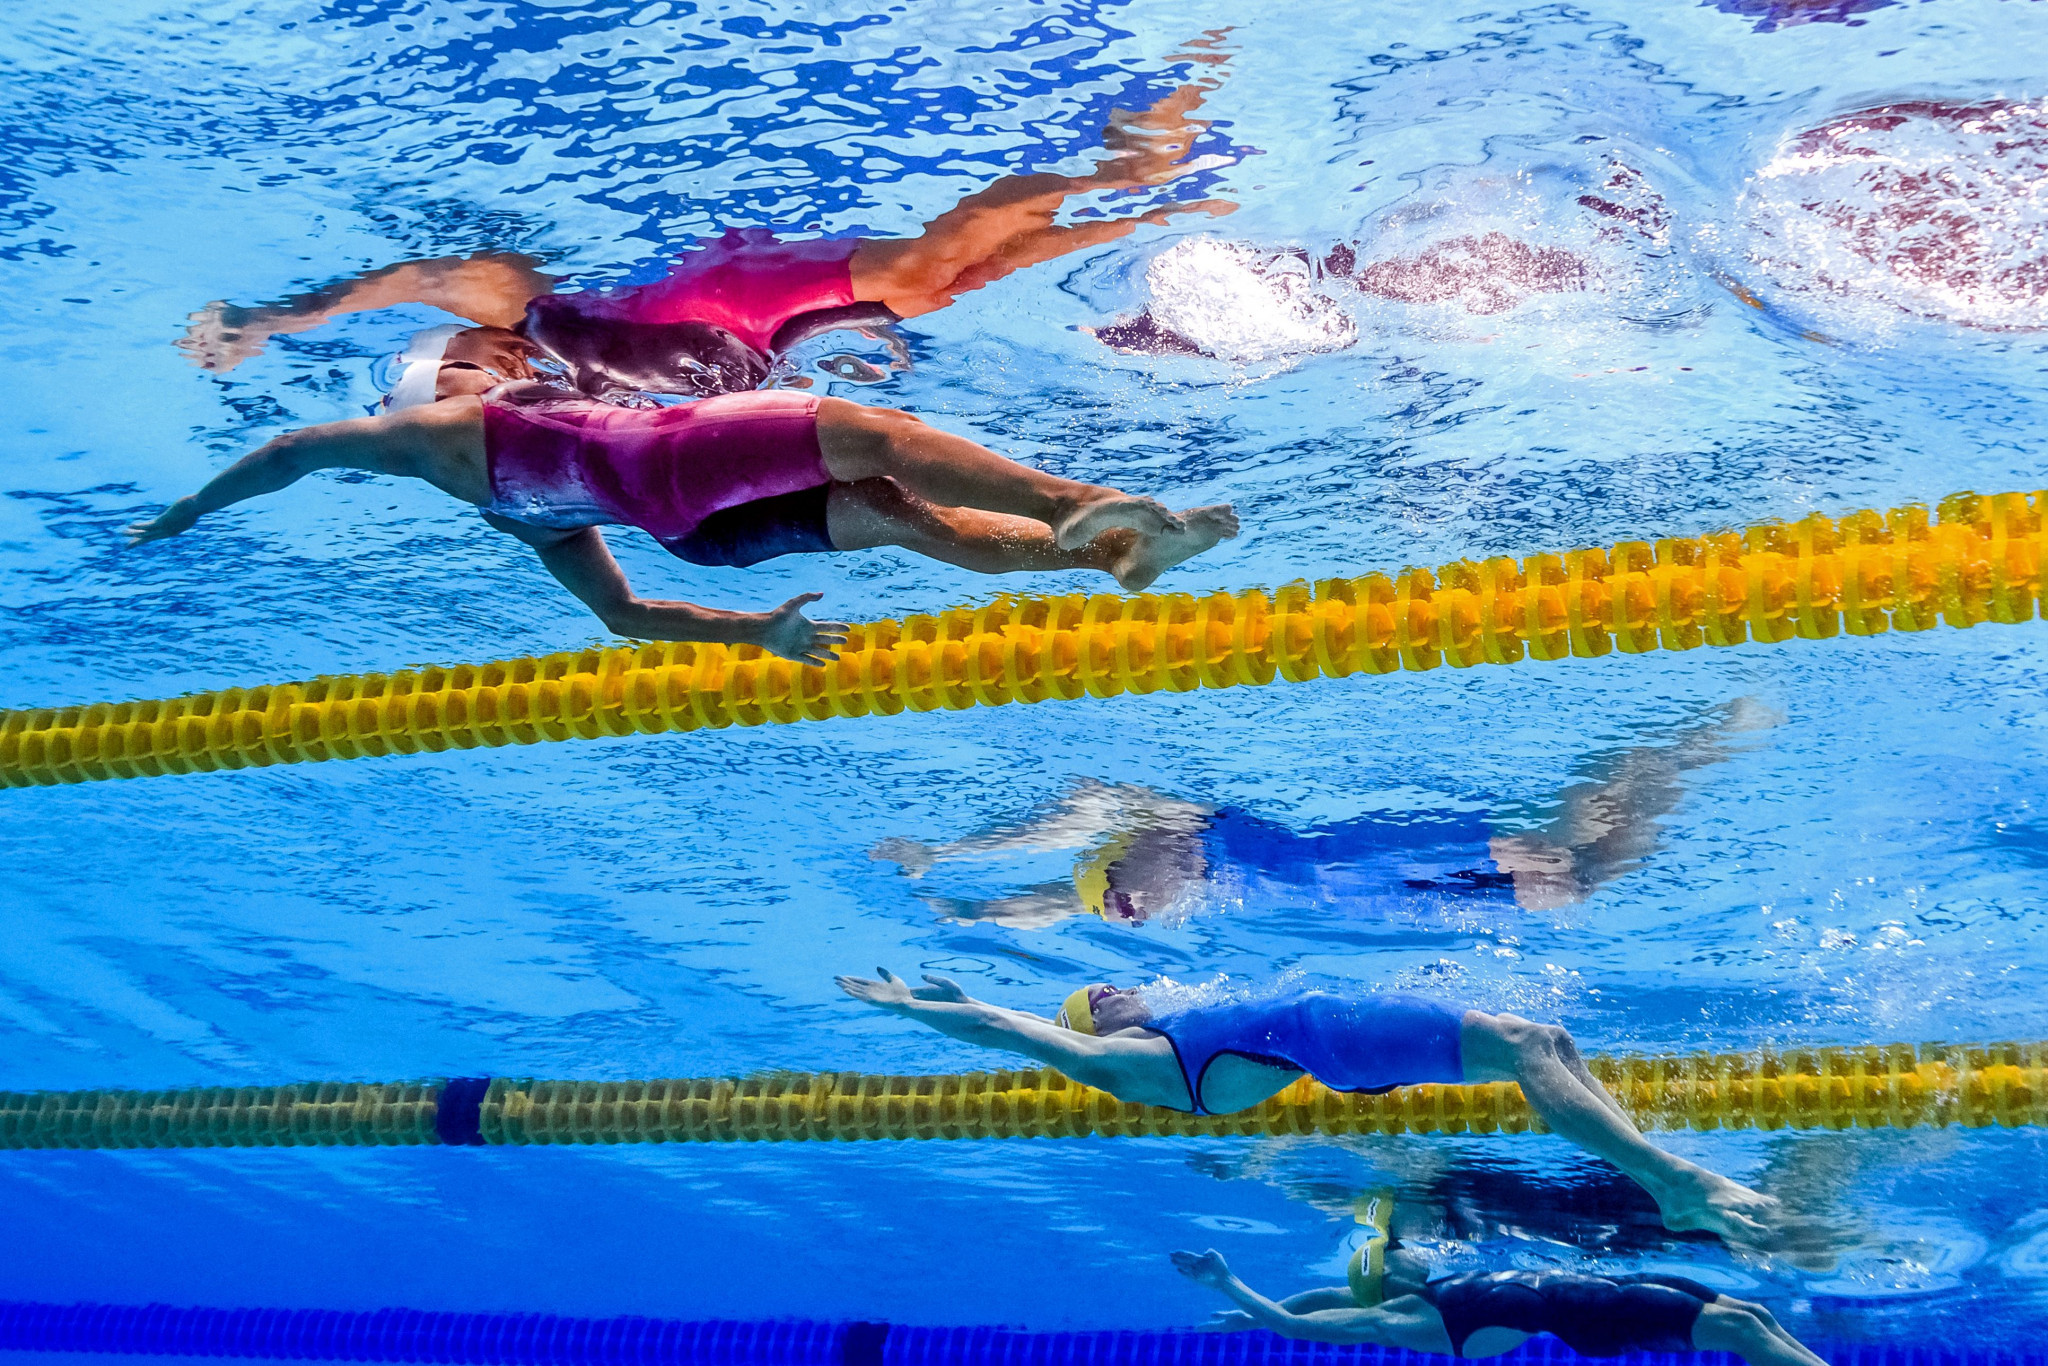 Faroe Islands' swimmers at the 2015 European Games in Baku competed under the European Aquatics flag as their country was not recognised by the International Olympic Committee ©Getty Images